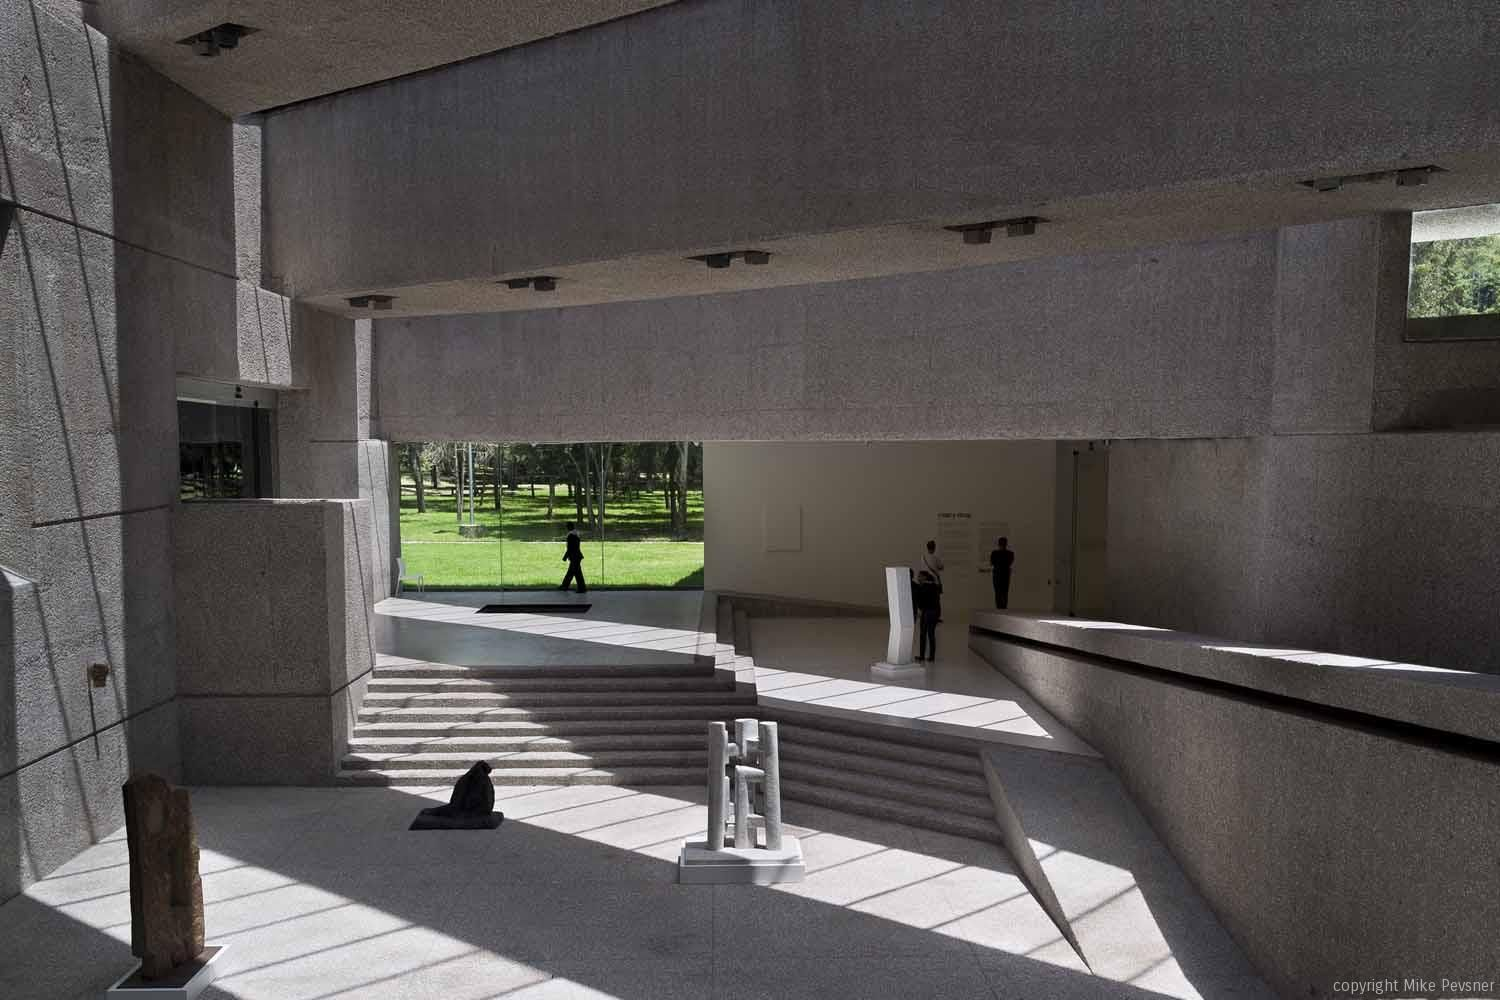 From The Museo Tamayo Website Rufino Tamayo Wanted The Museum To House His Collection Of International Art In The Bosque De Chapulte Architecture House Museum